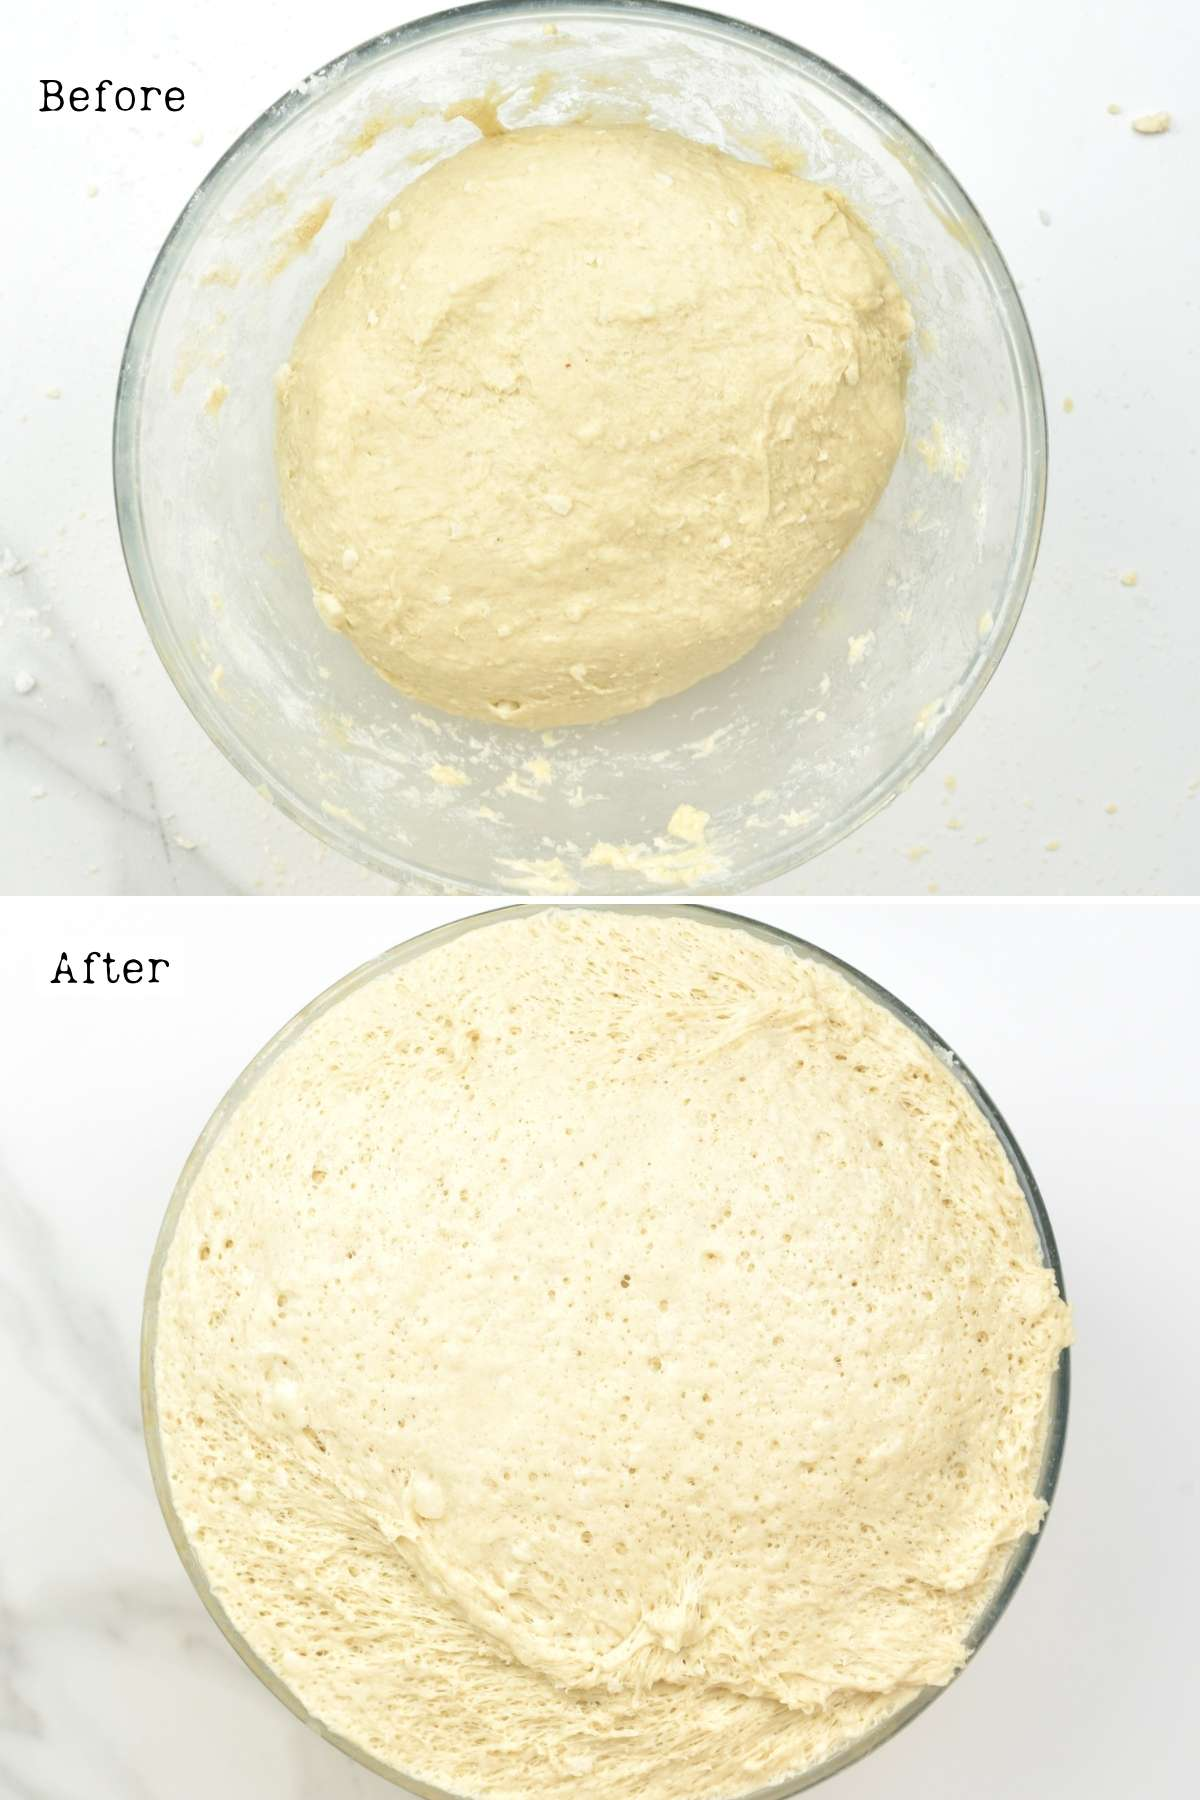 Before and after proofing coconut bake dough